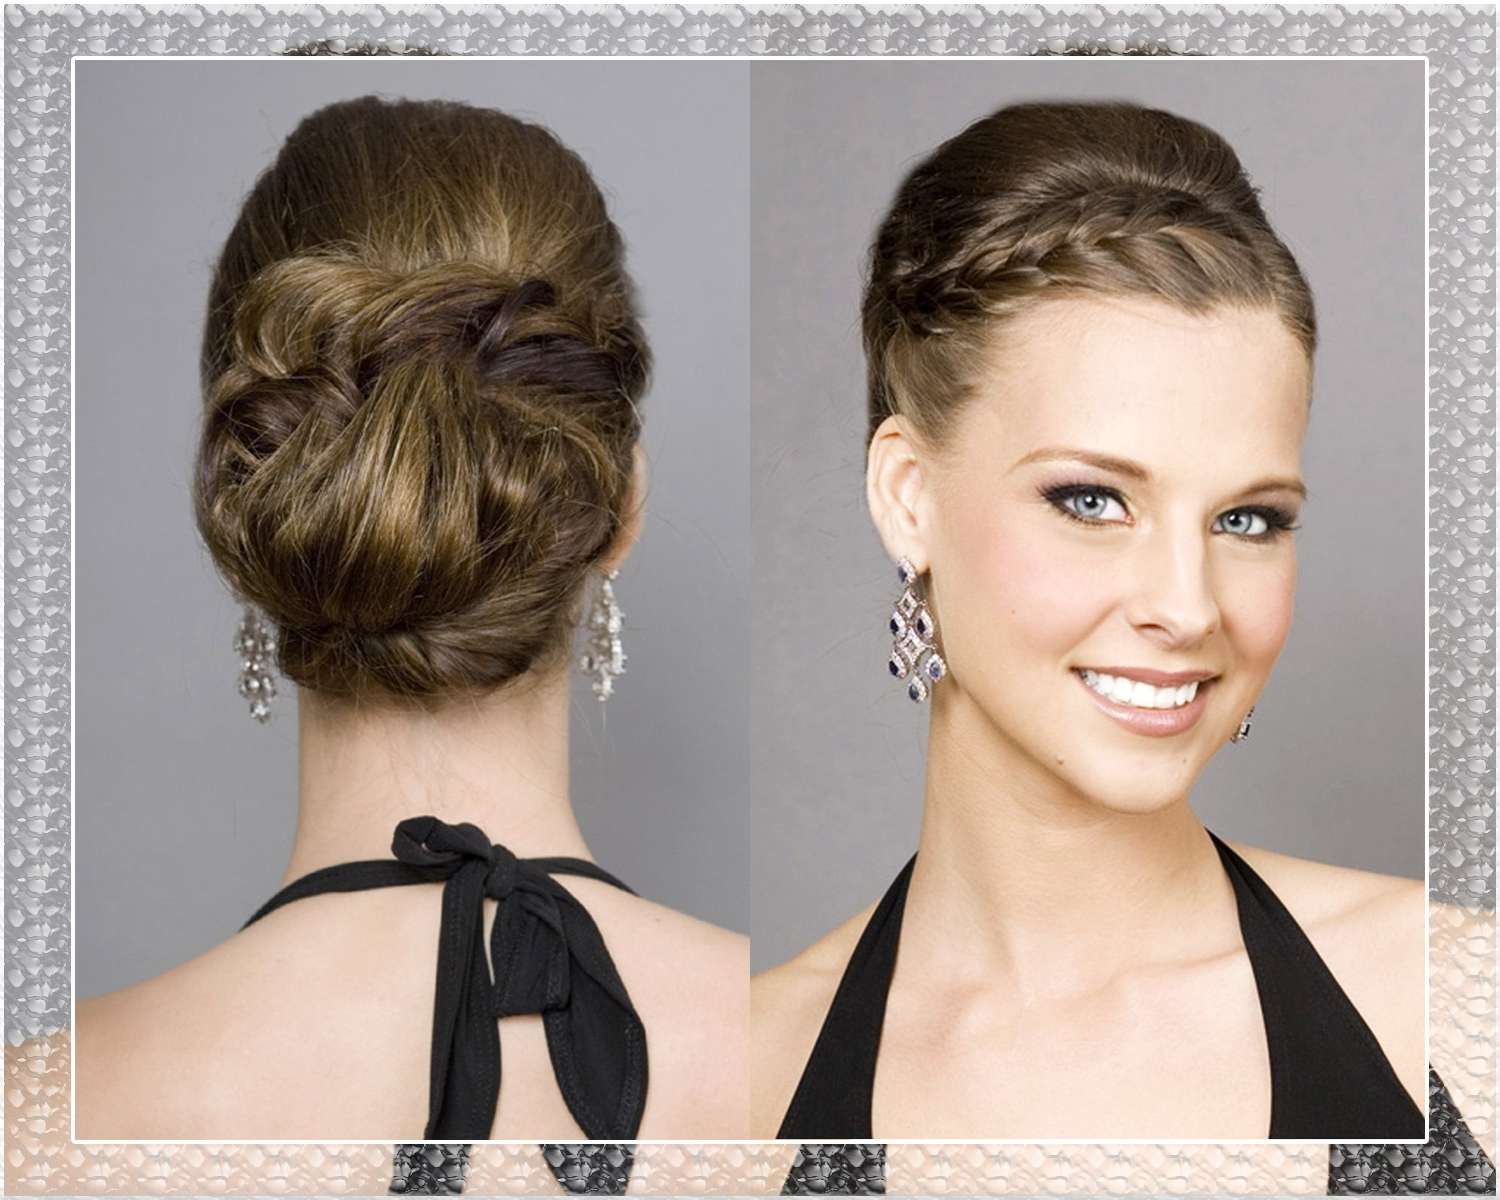 Fashionable Wedding Updos For Long Hair With Braids Throughout Braided Updo Wedding Hairstyles (View 6 of 15)